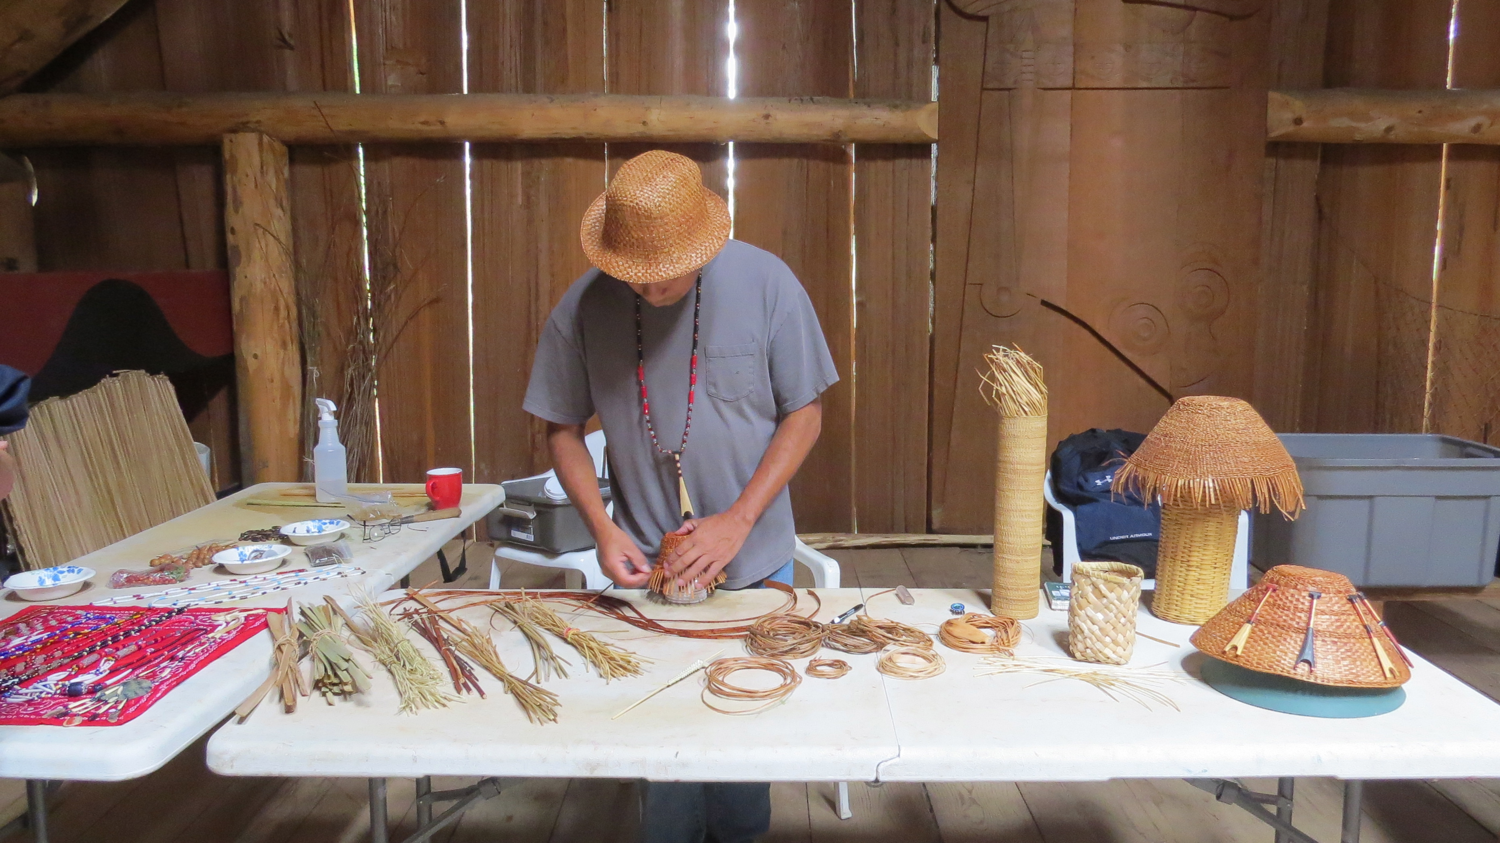 Artist-in-residence Greg Archuleta prepares demonstration materials for visiting students